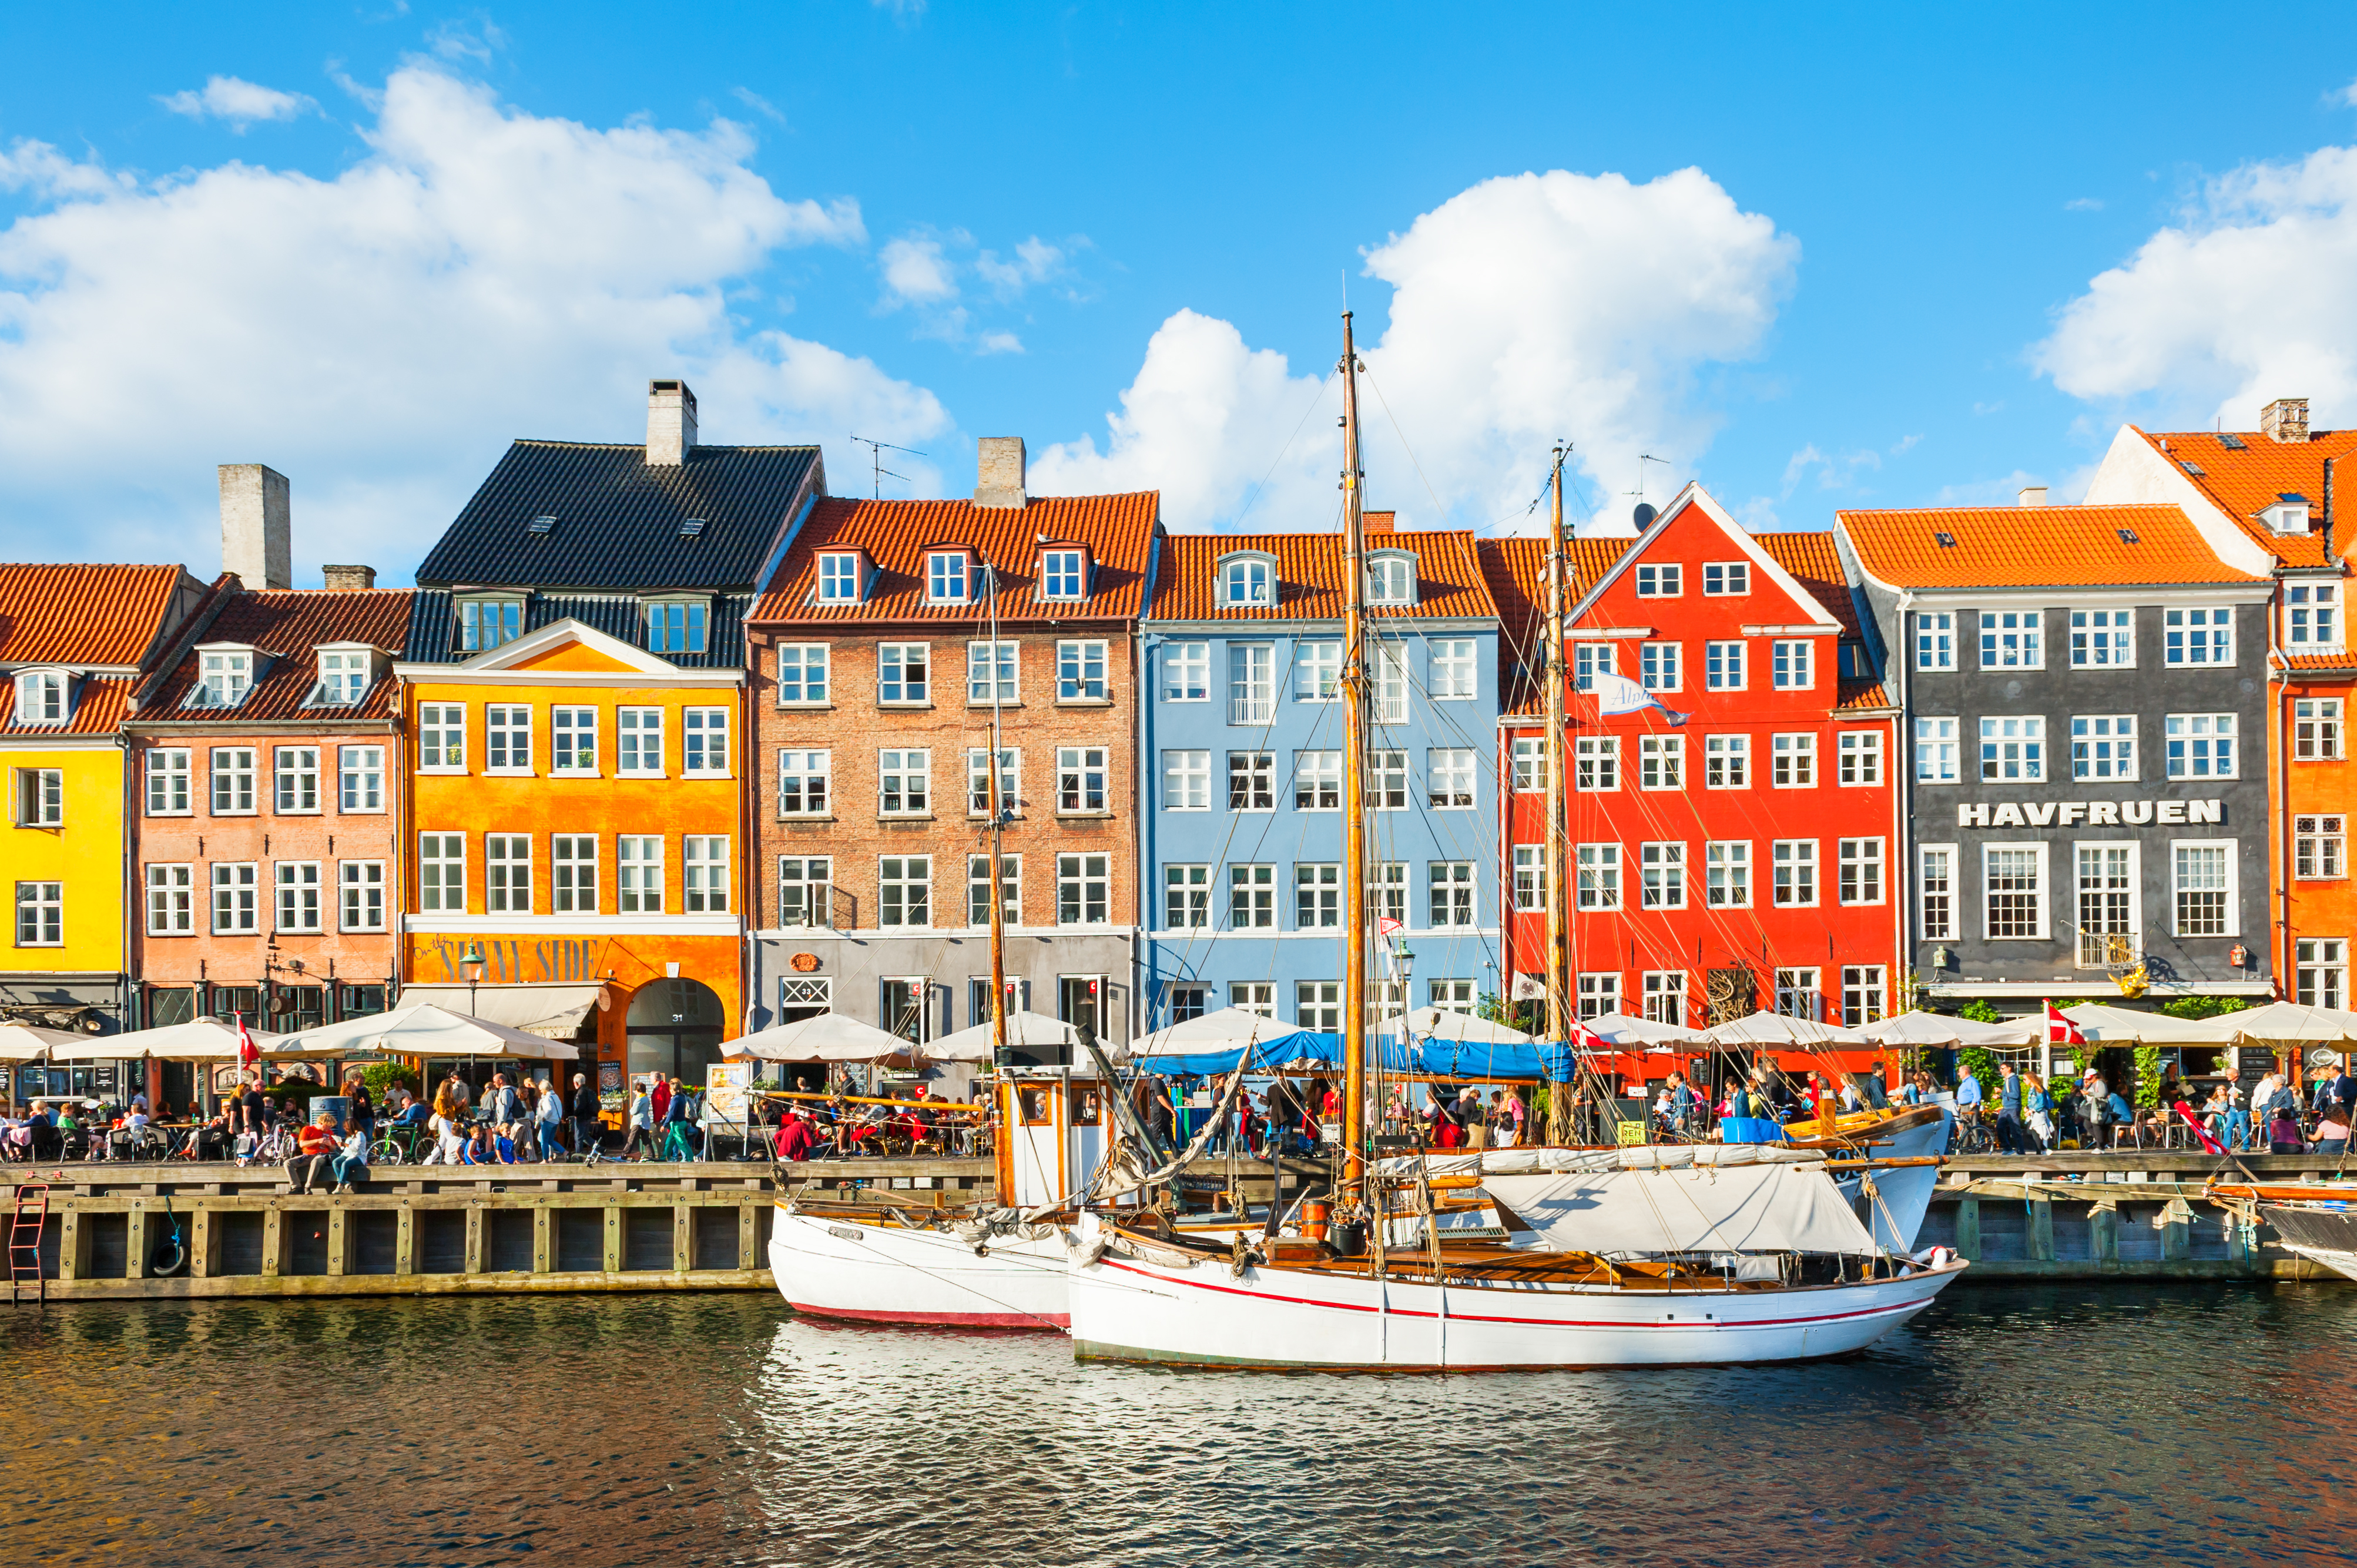 Ikea wants to send you on a free two-week trip to Denmark to research happiness